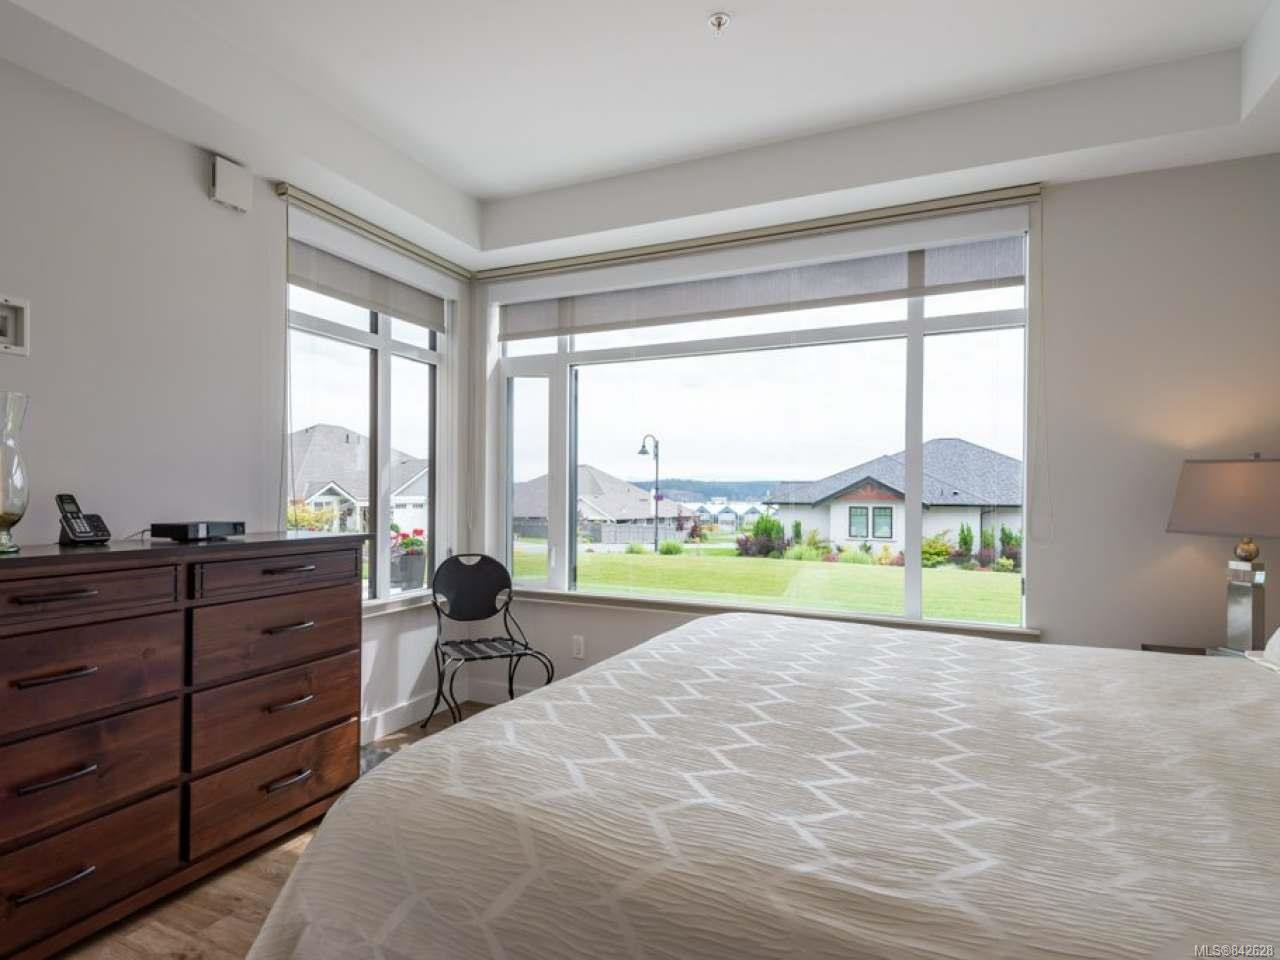 Photo 6: Photos: 101 2777 North Beach Dr in CAMPBELL RIVER: CR Campbell River North Condo Apartment for sale (Campbell River)  : MLS®# 842628